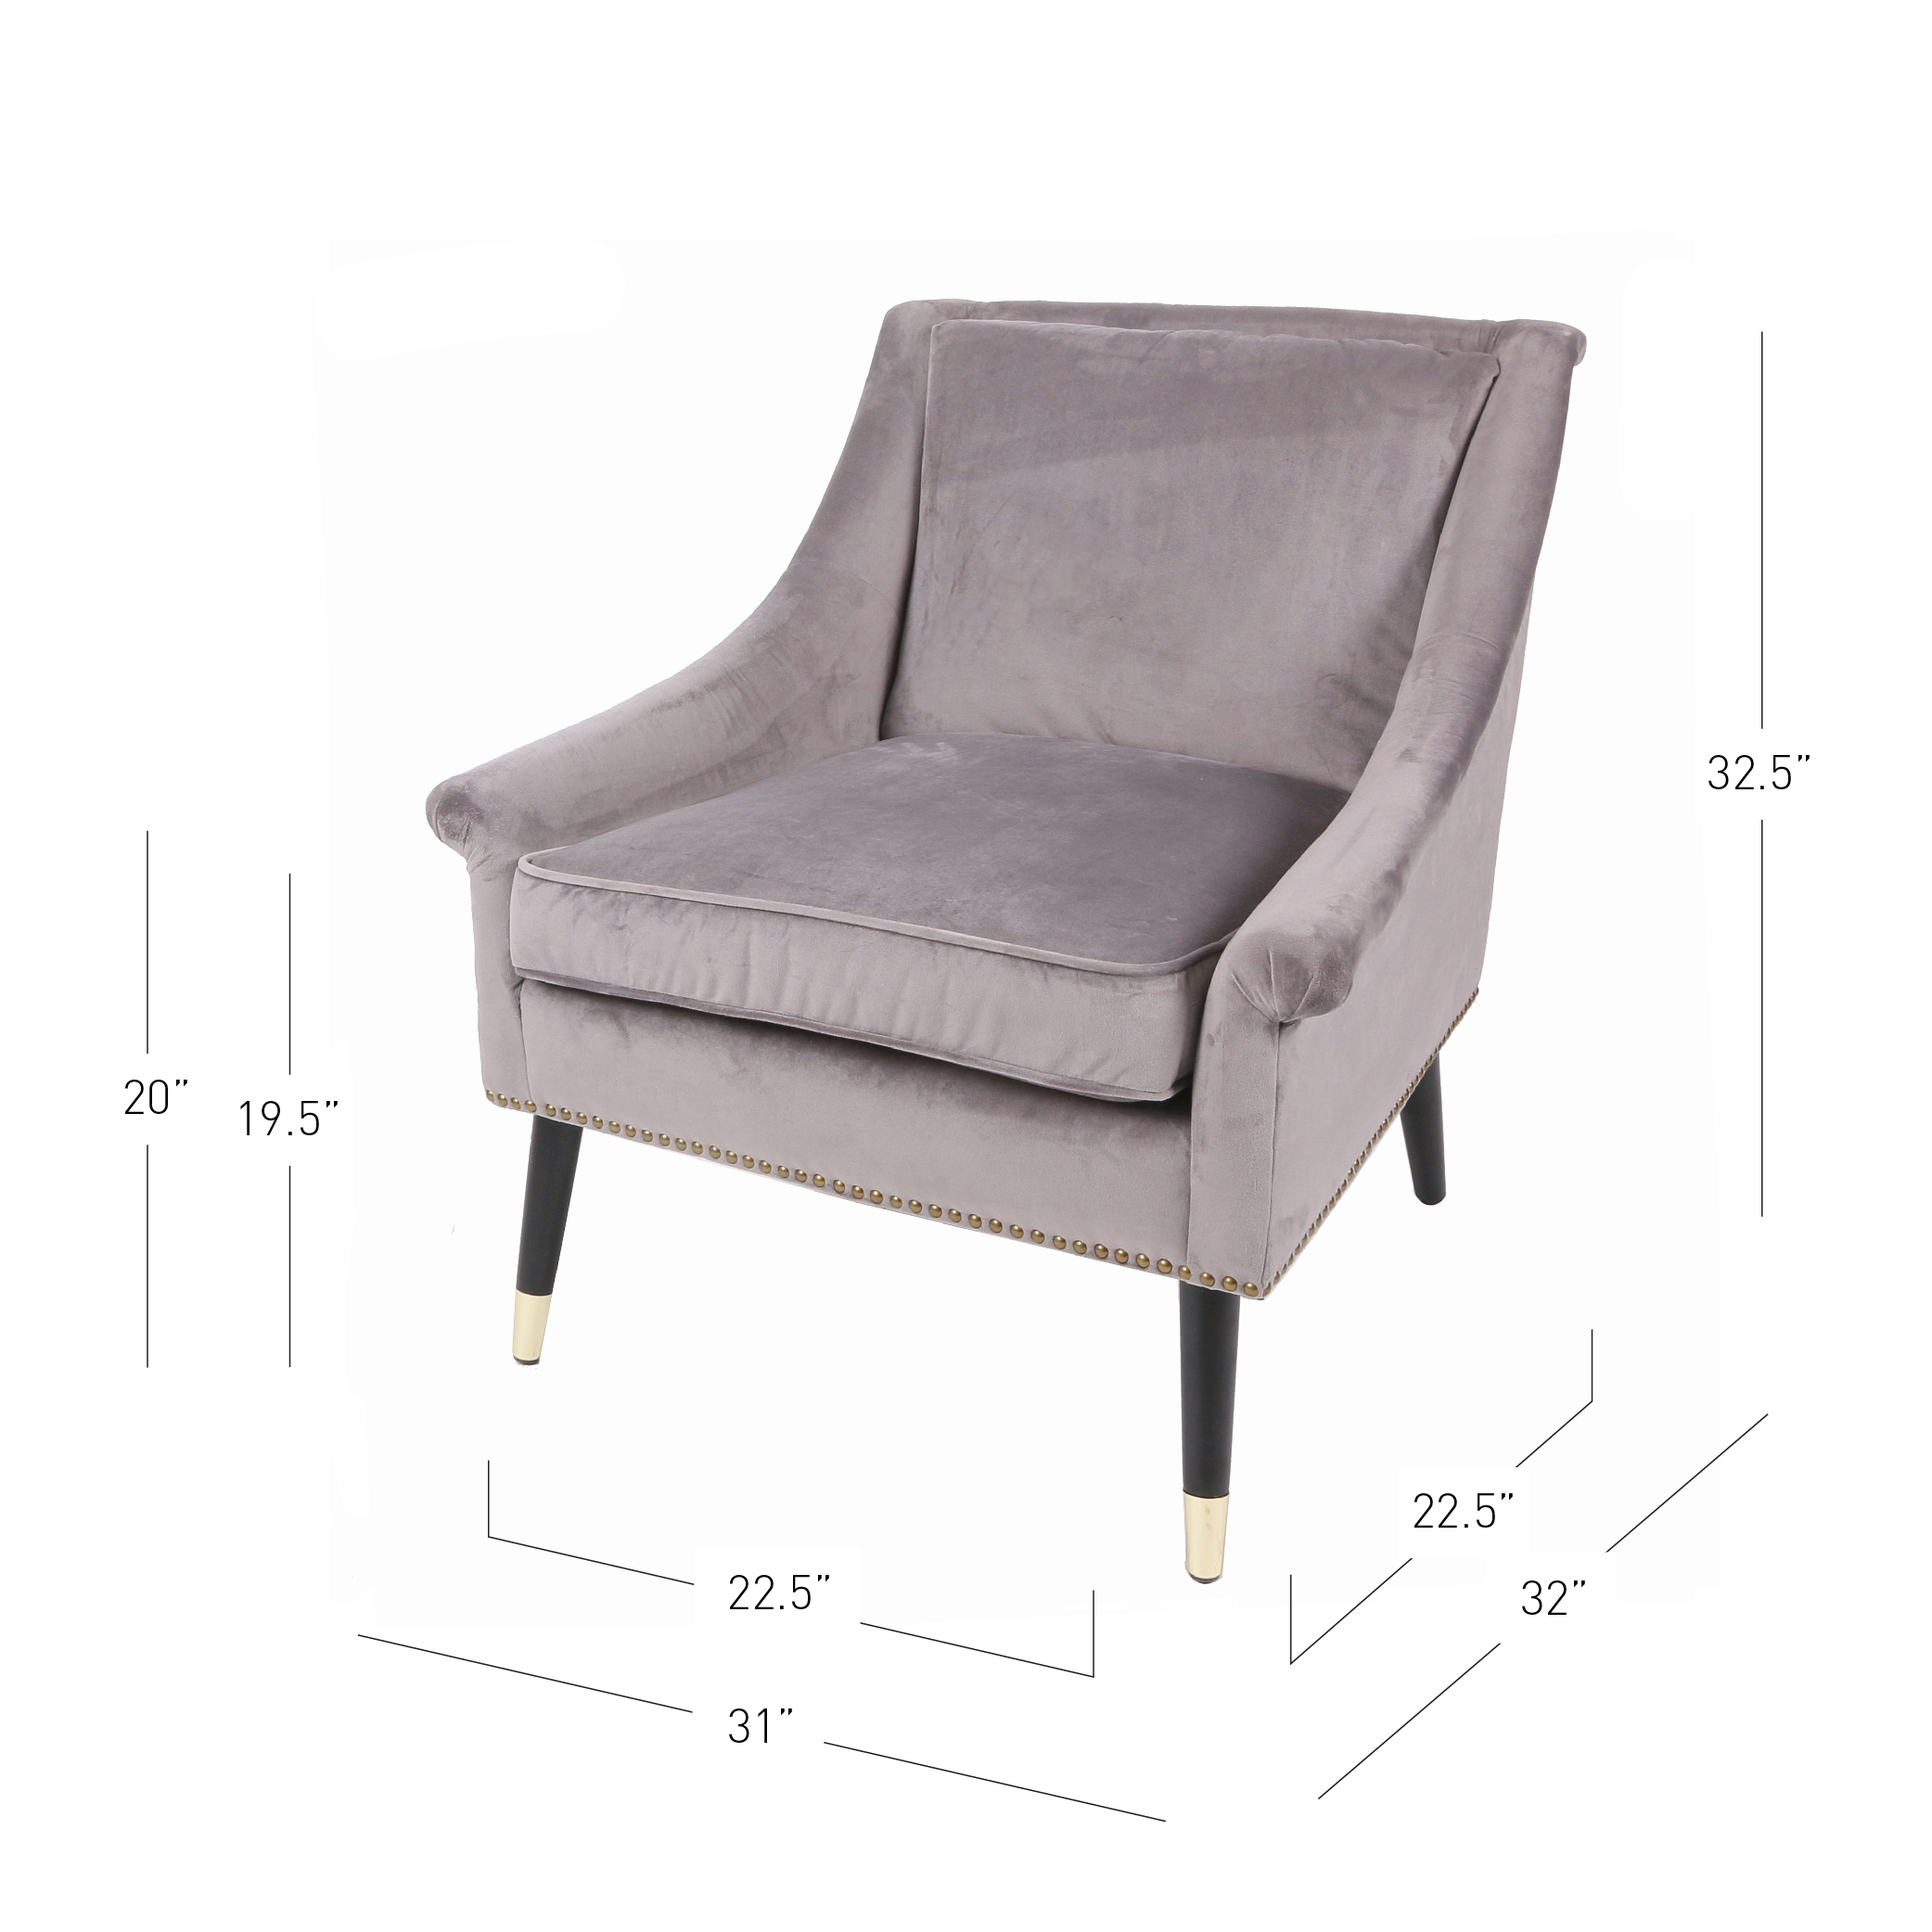 gold metal accent chair milk crate chairs 3500036 161 npd furniture wholesale lifestyle